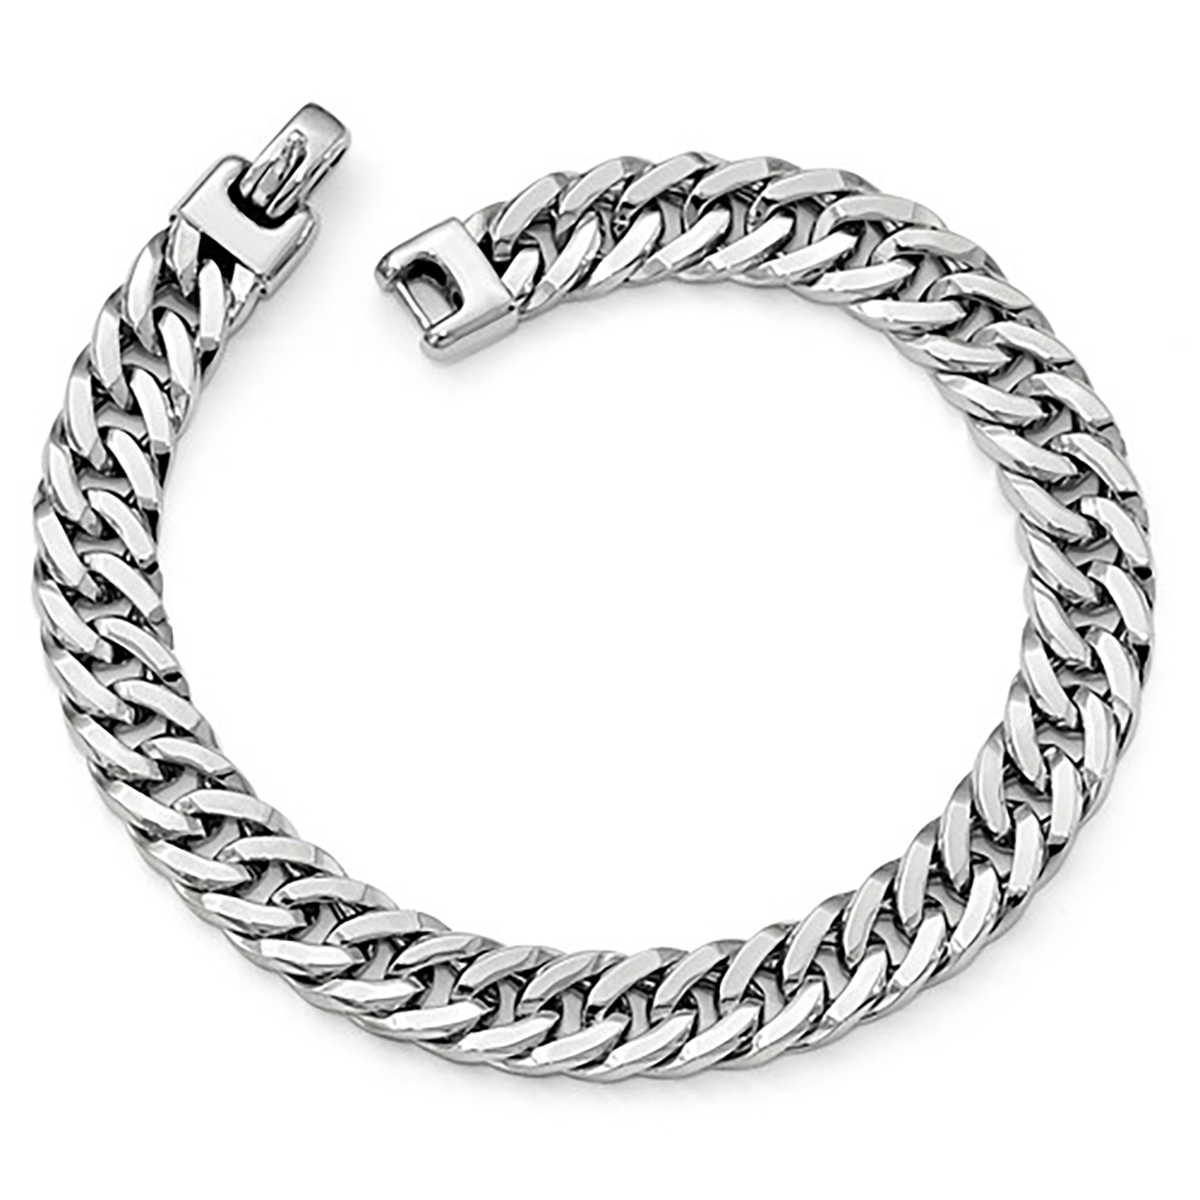 Hunter Chain Bracelet